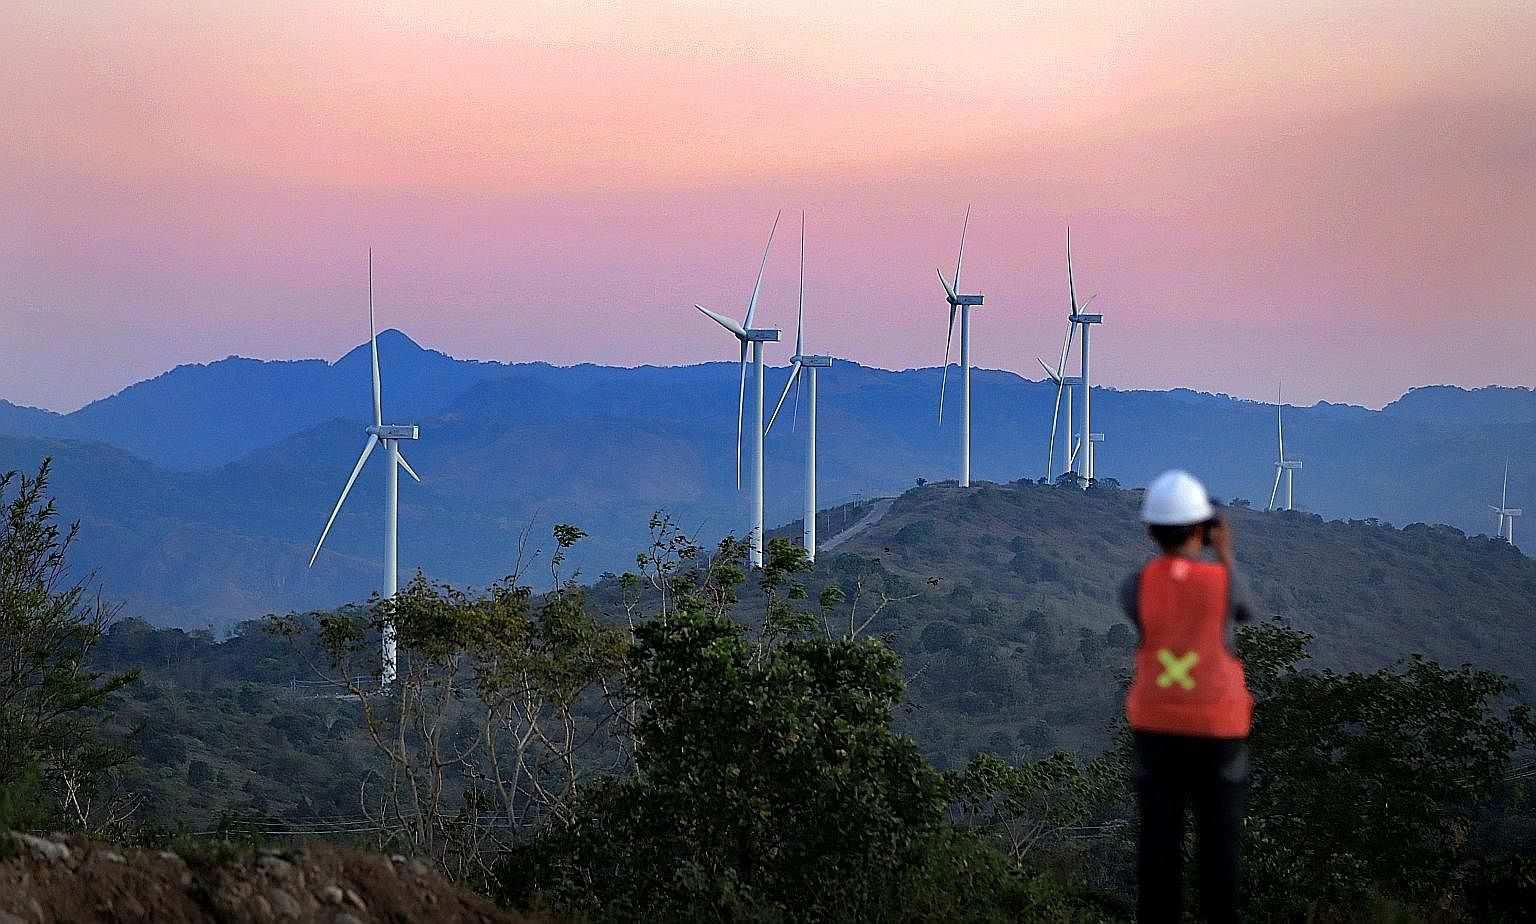 Wind turbines in South Sulawesi, Indonesia. The rapid advancements in science and innovation have opened up many new possibilities to pursue sustainable development, says Deputy Prime Minister Heng Swee Keat.